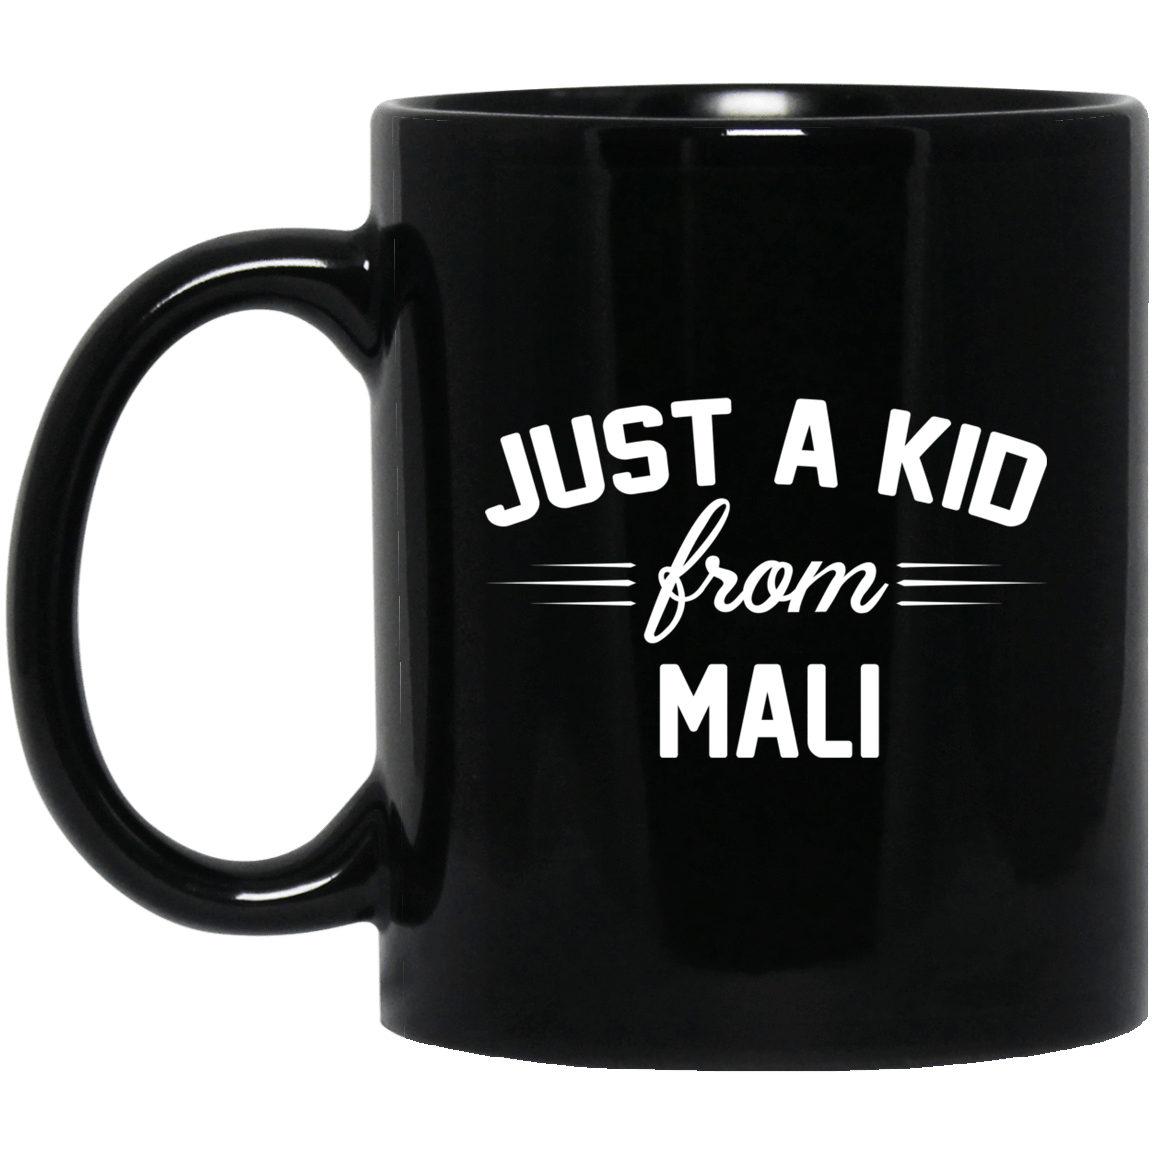 Just A Kid Store | Mali Mug 1065-10181-72111193-49307 - Tee Ript